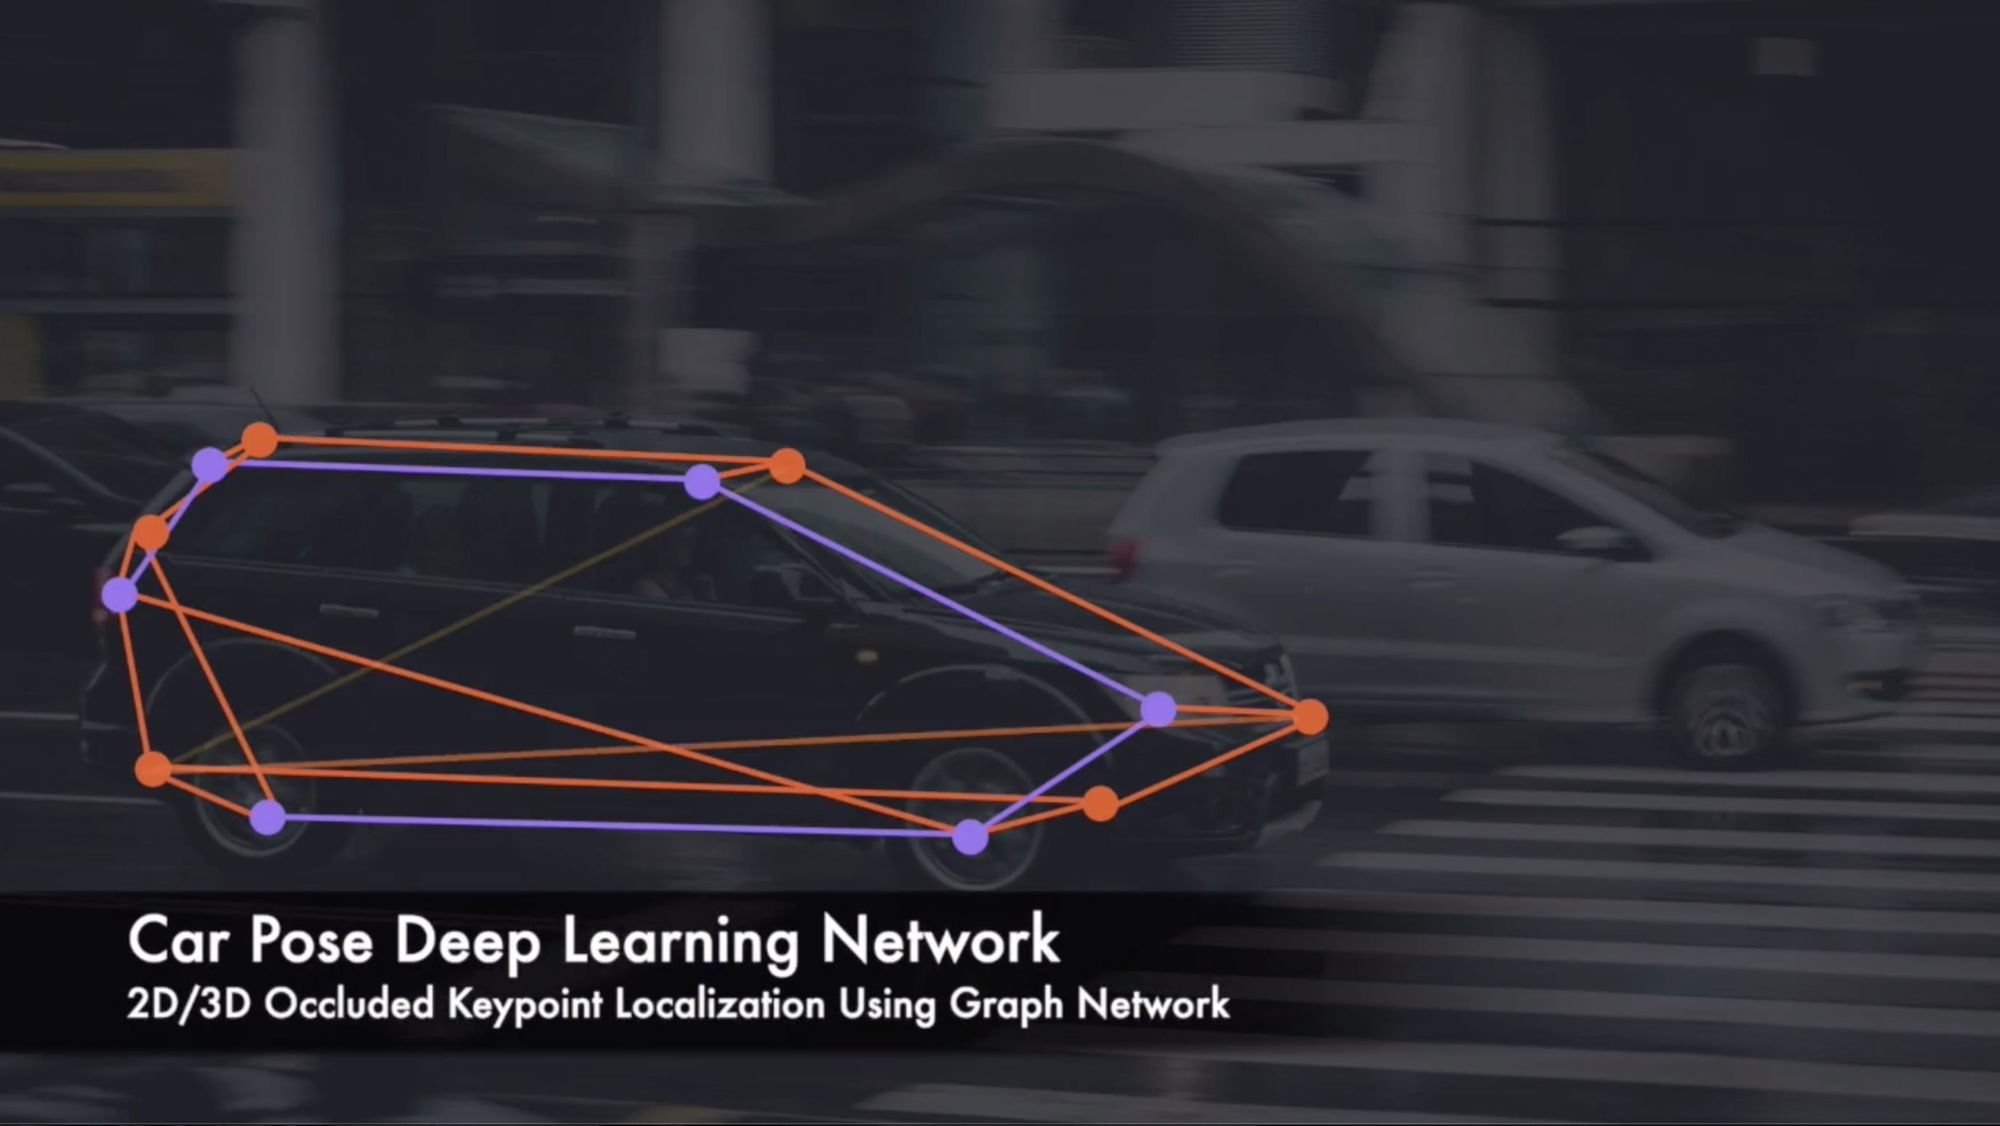 Introducing Car Pose Net: A Camera-Based Deep Learning Model for Tracking Cars in Three Dimensions